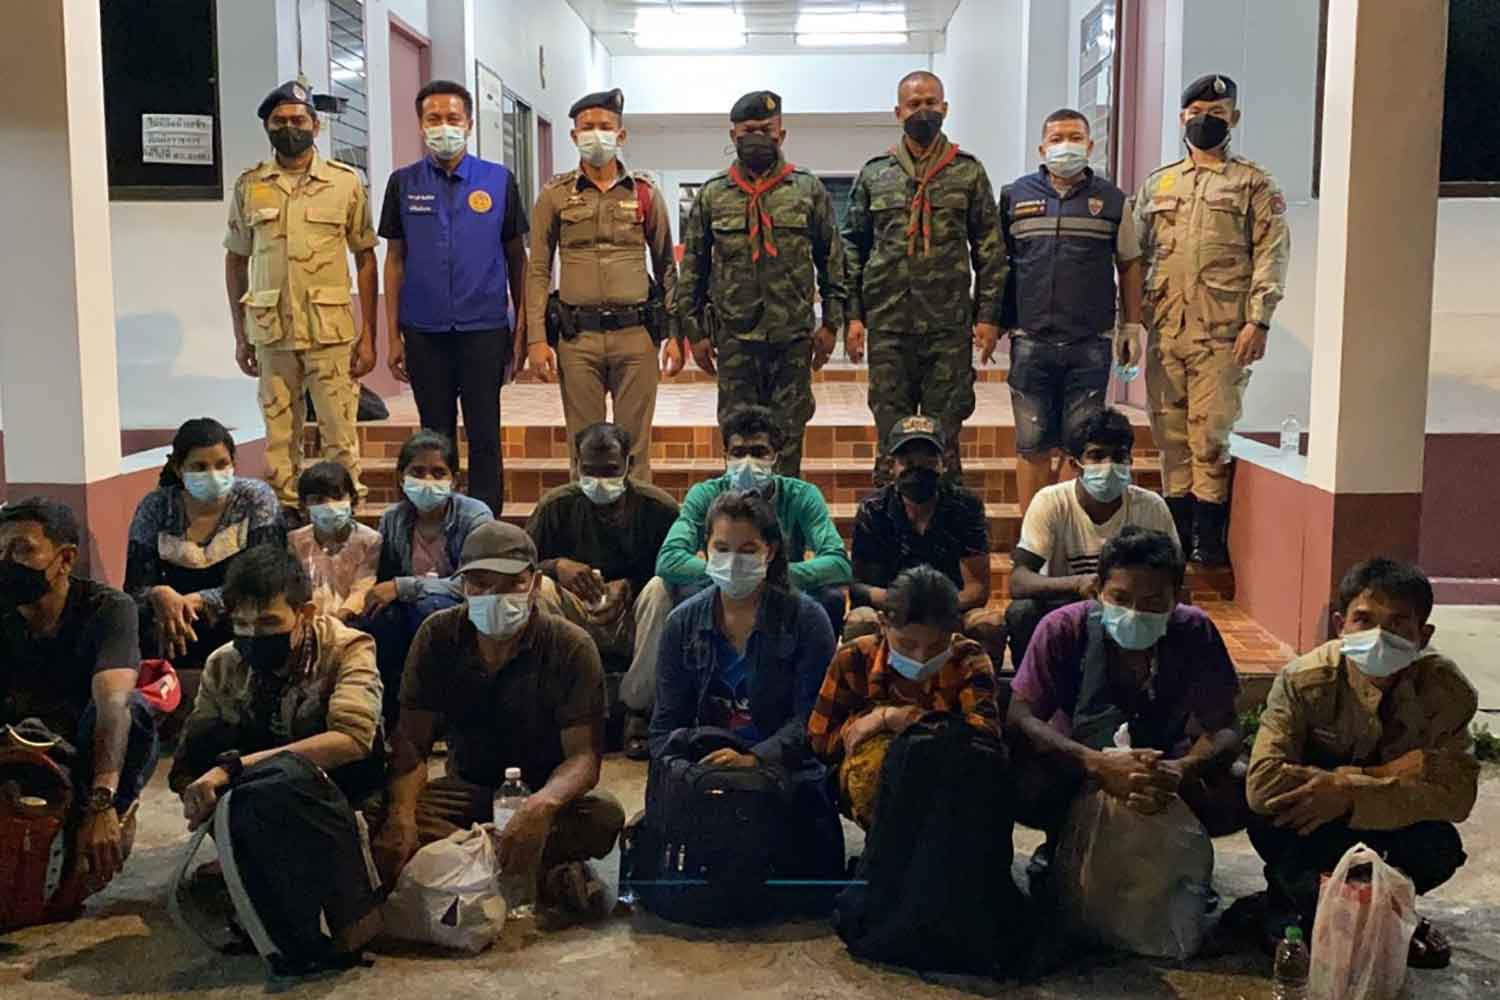 The 14 illegal Myanmar migrants at Sadao police station in Songkhla after they were caught on Sept 11 while waiting to be smuggled into Malaysia. (Photo: Assawin Pakkawan)